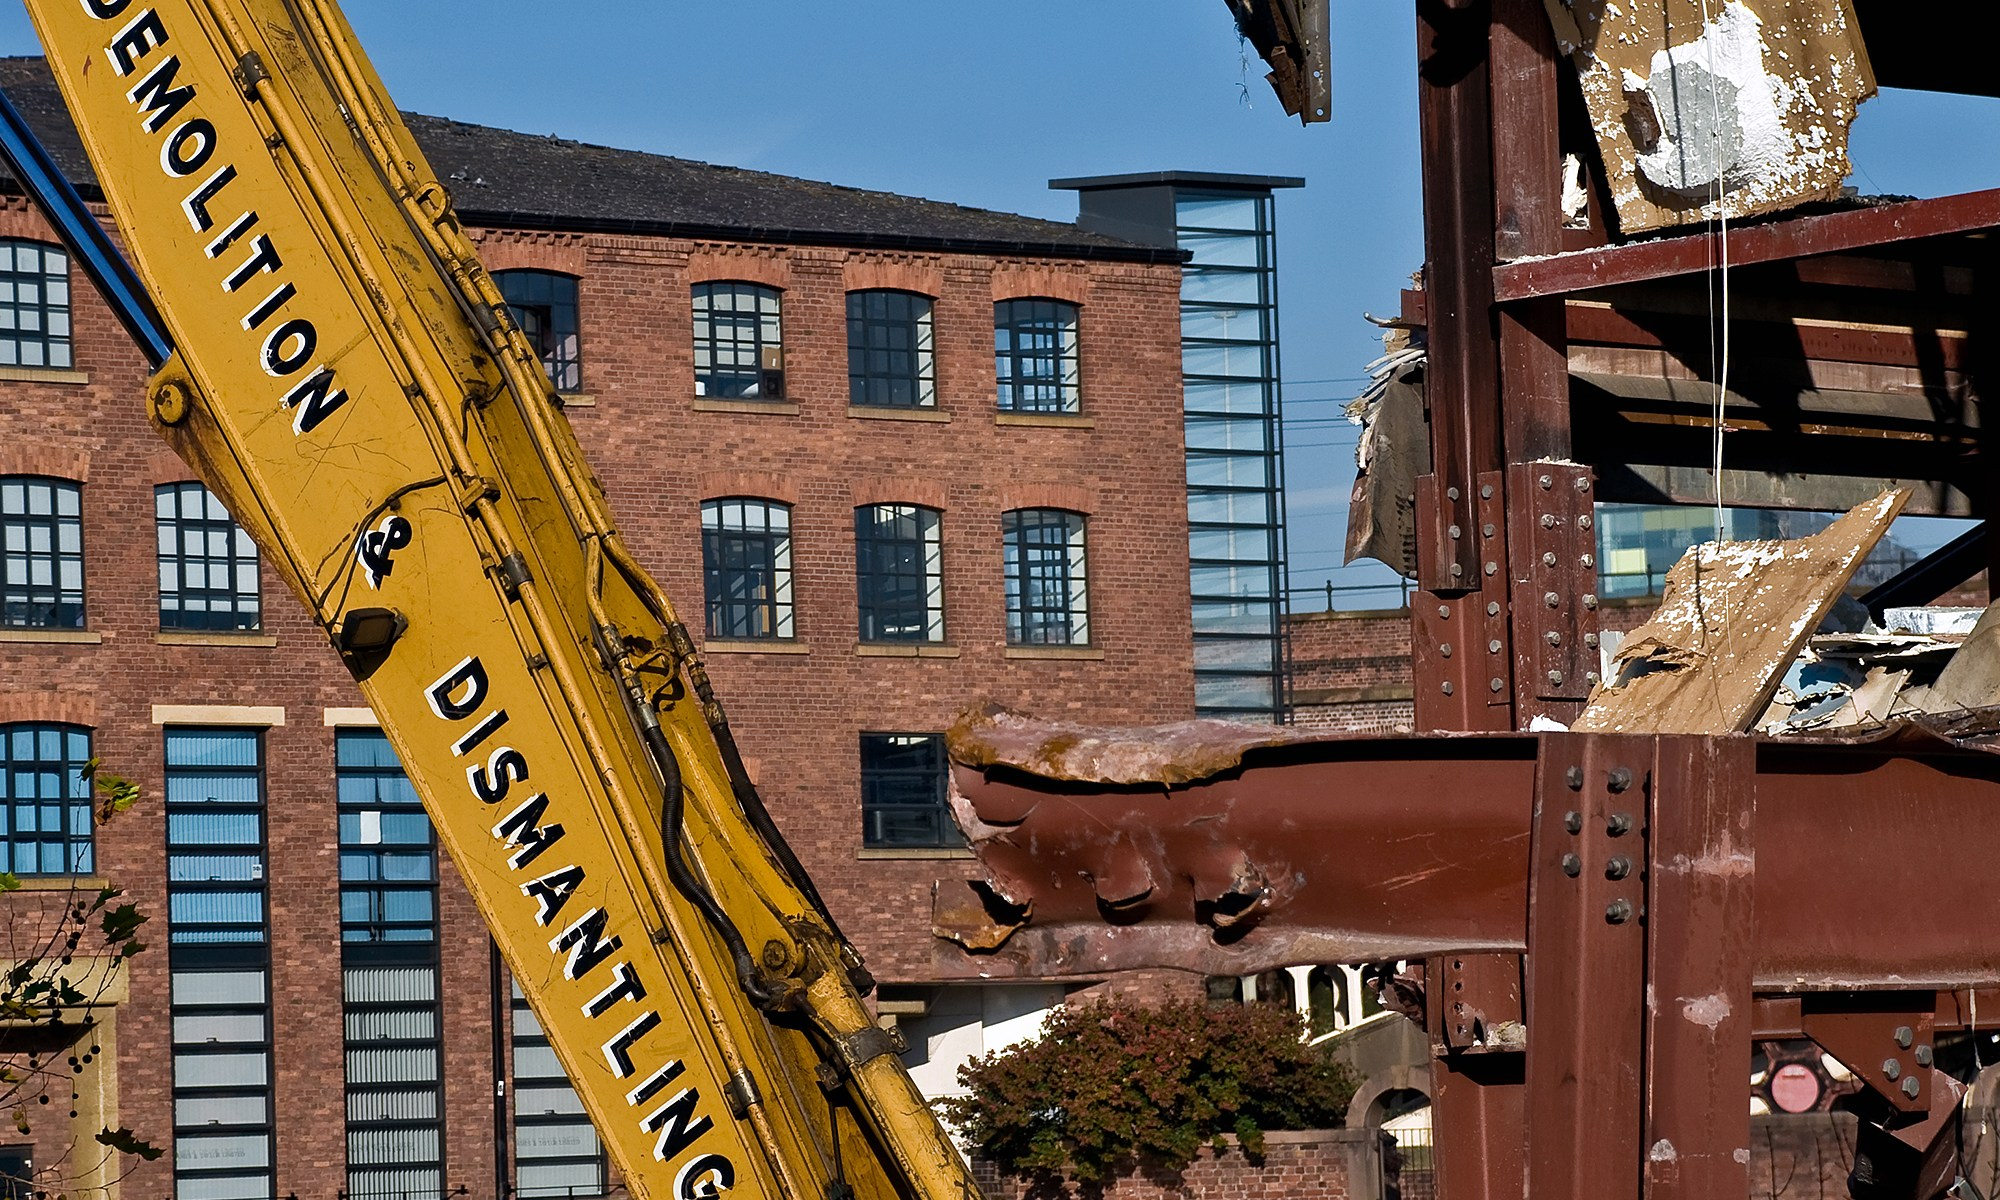 Demolition of Castlefield, Manchester